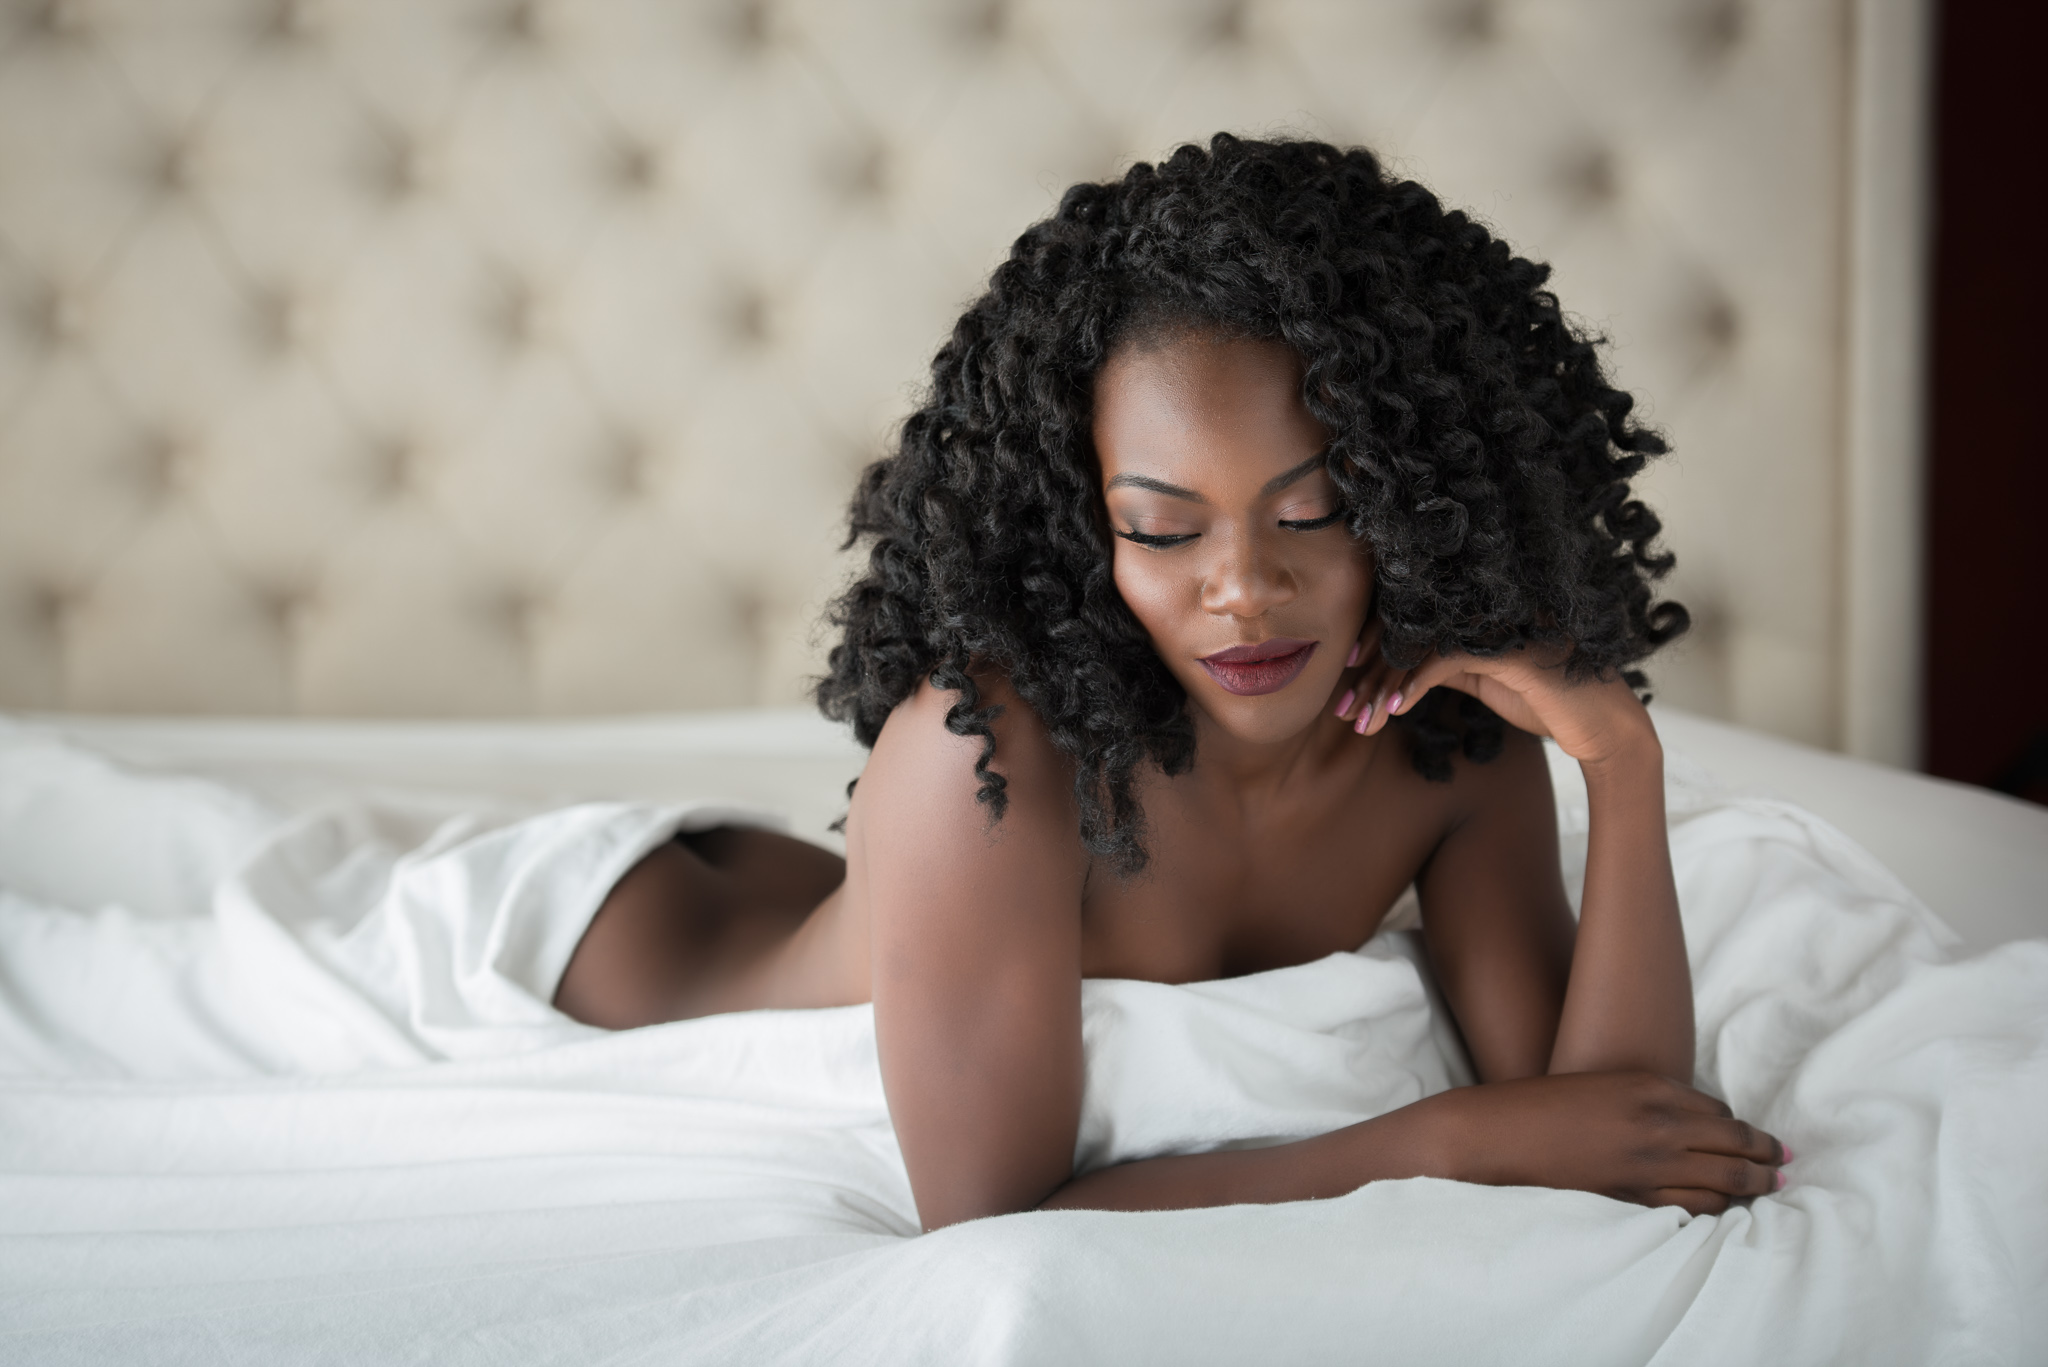 How to Prepare for a Boudoir Photoshoot